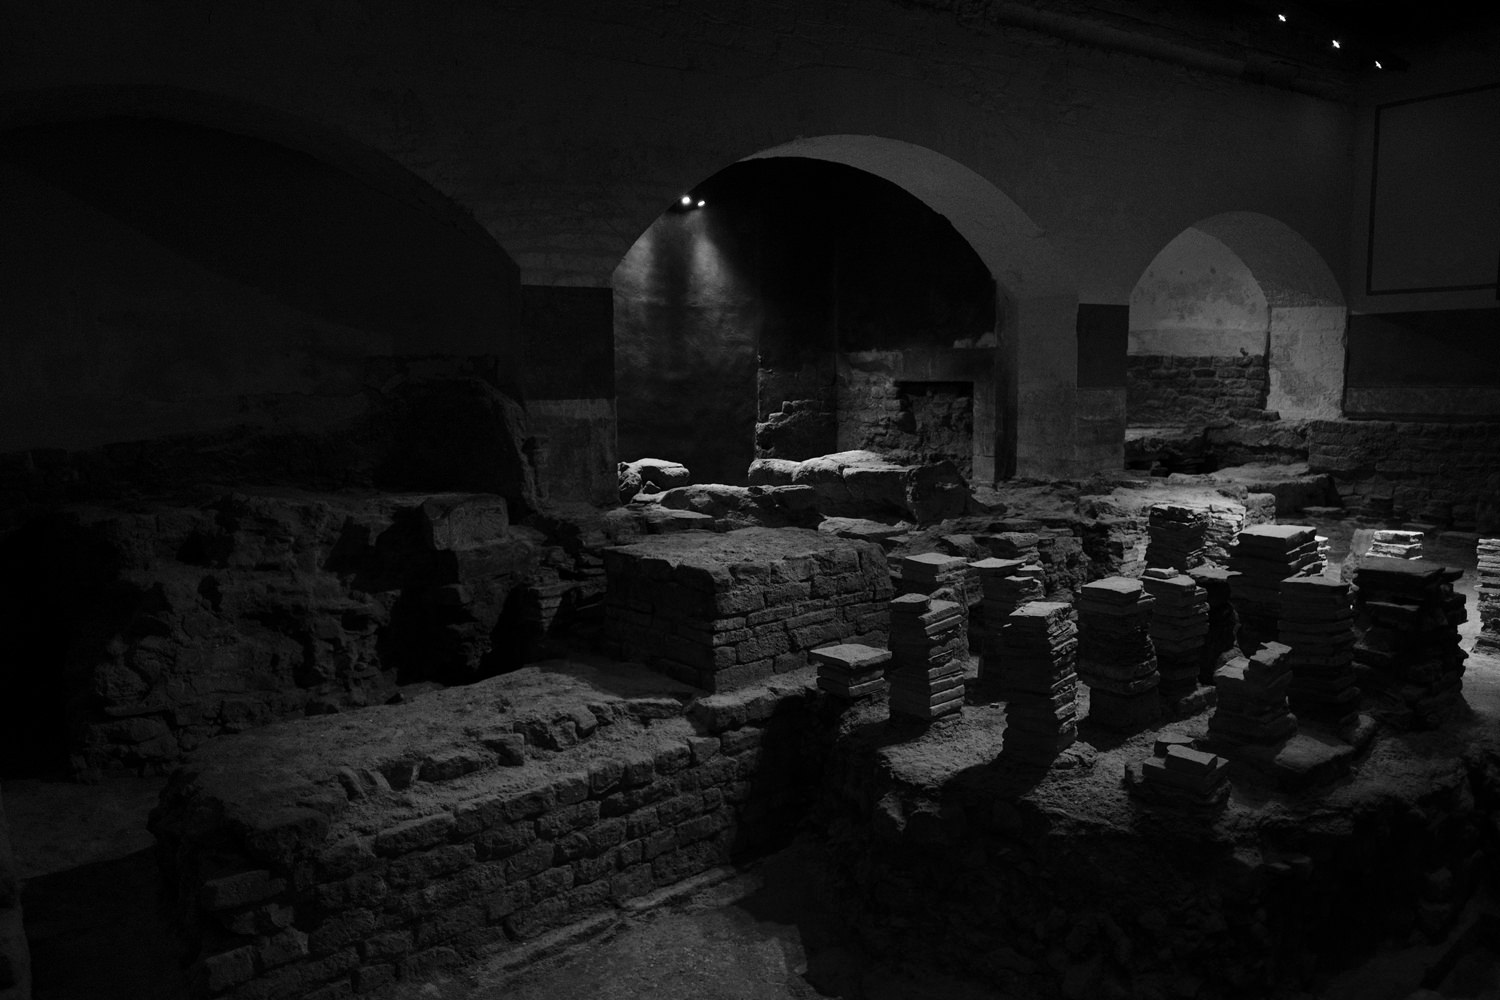 A room with circular archways. The floor is missing parts, showing the stacks of bricks used to make the hypercaust.